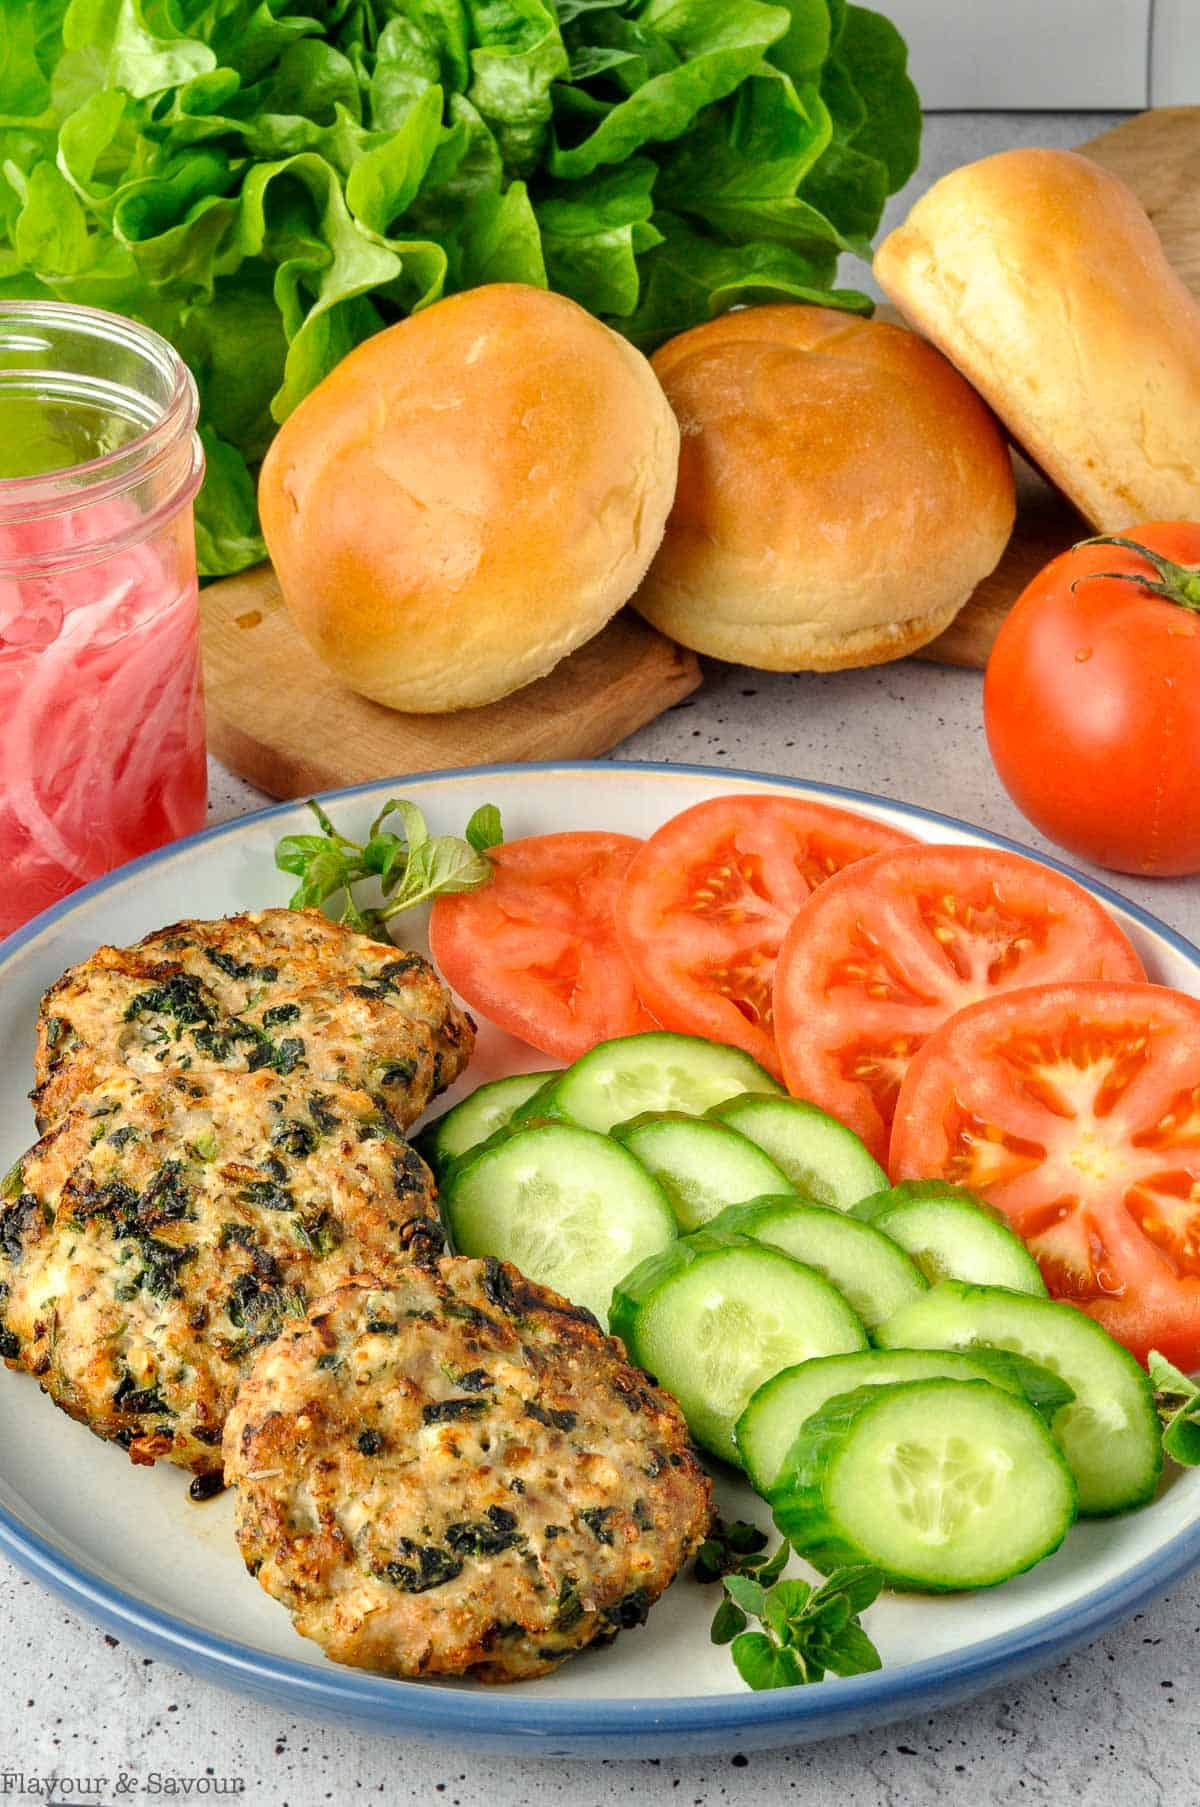 Ingredients for Greek Chicken Burgers arranged on a plate with buns and lettuce.